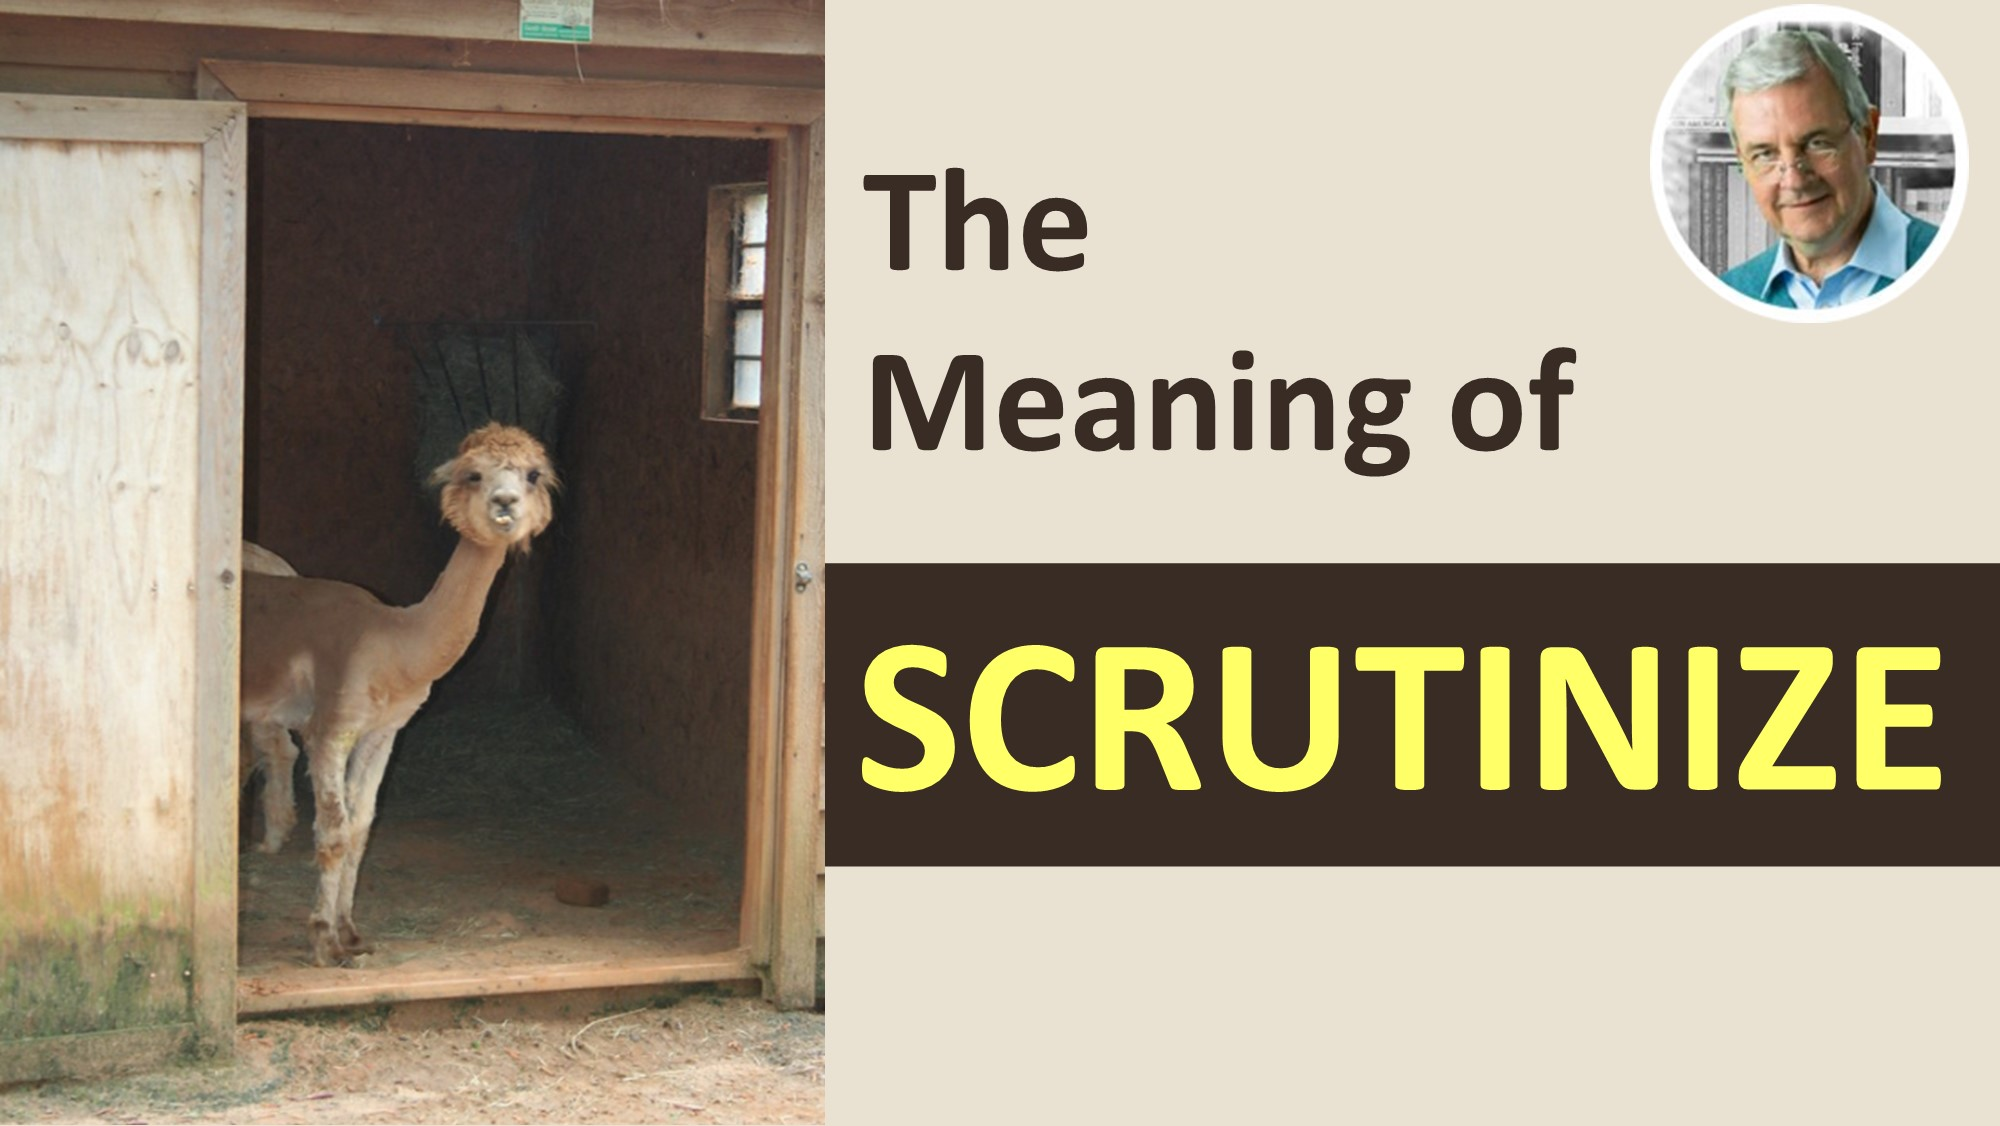 what does scrutinize mean